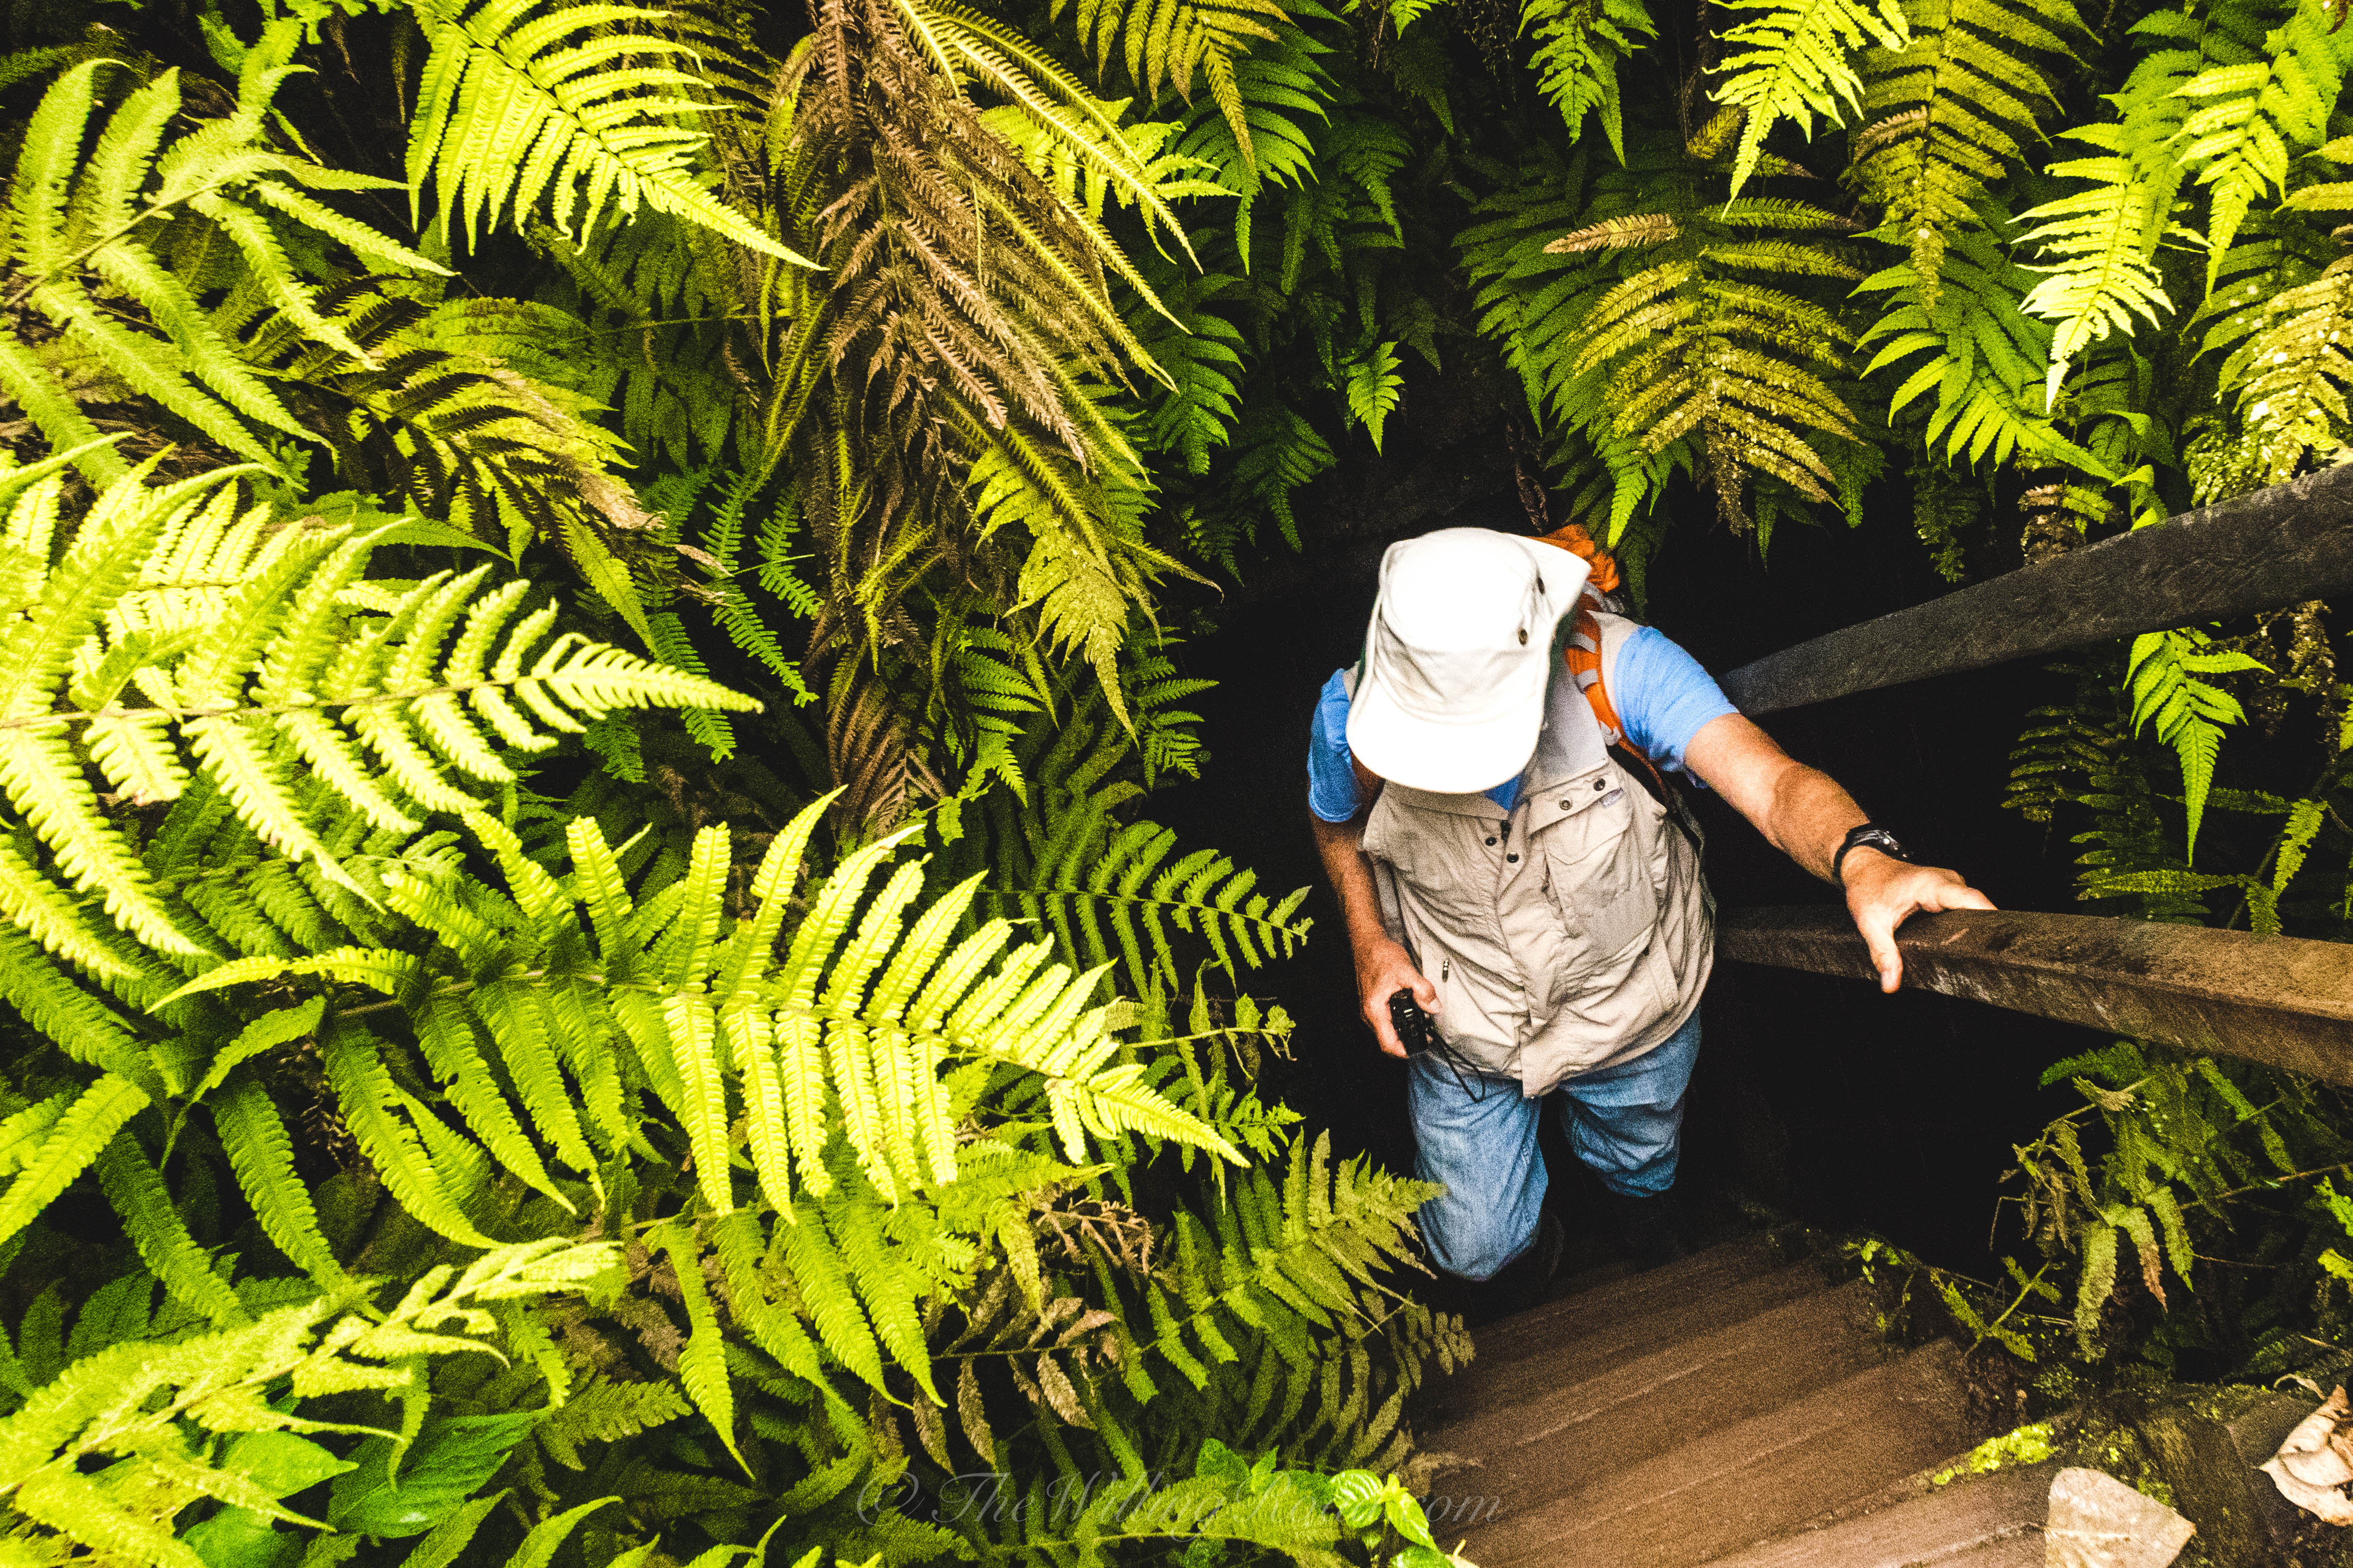 The lava tunnels are on the Island of Santa Cruz beneath the giant tortoise route. The pathway reemerges amongst some beautiful fern plants.